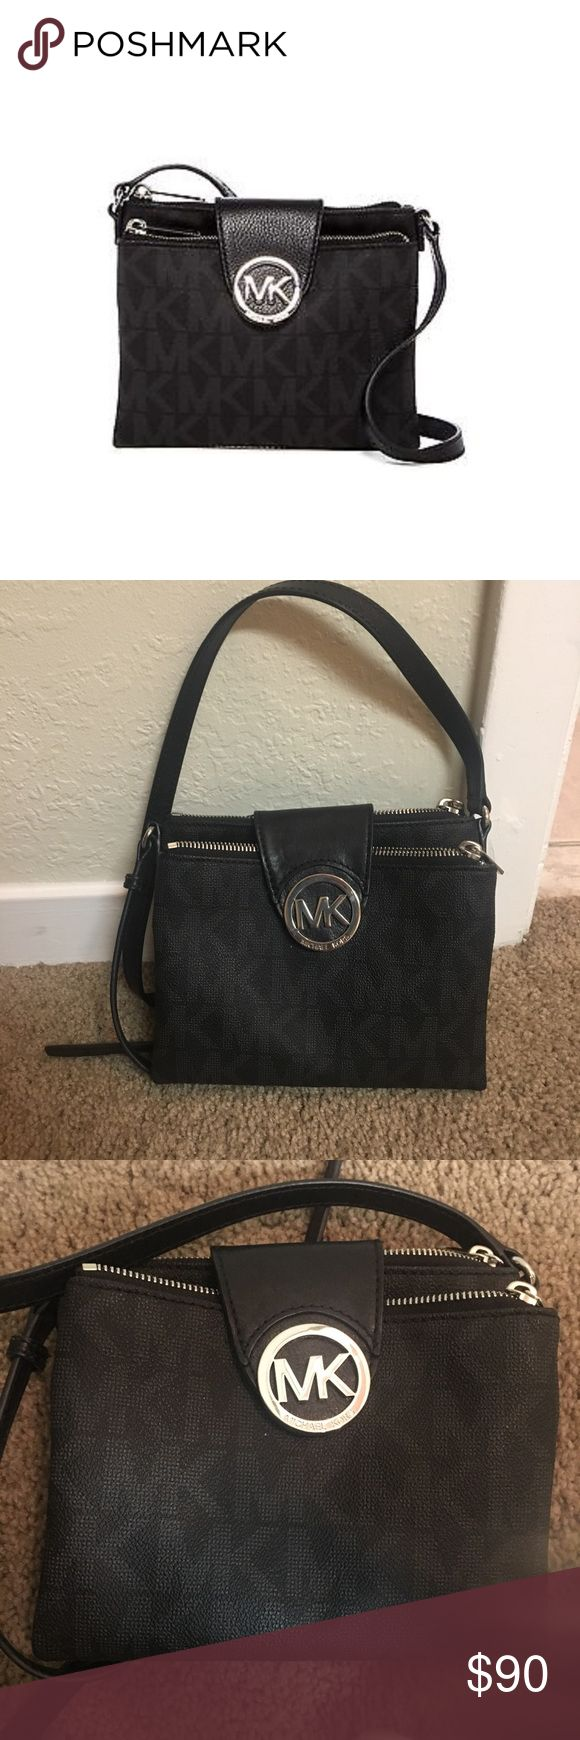 Michael Kors Fulton large crossbody black bag Black leather with the Michael Kors emblem all over. This has been used very rarely and is in excellent condition. There are no snags, scratches, stains, or anything on and inside this bag. It's great for an everyday use! The strap is adjustable. Michael Kors Bags Crossbody Bags